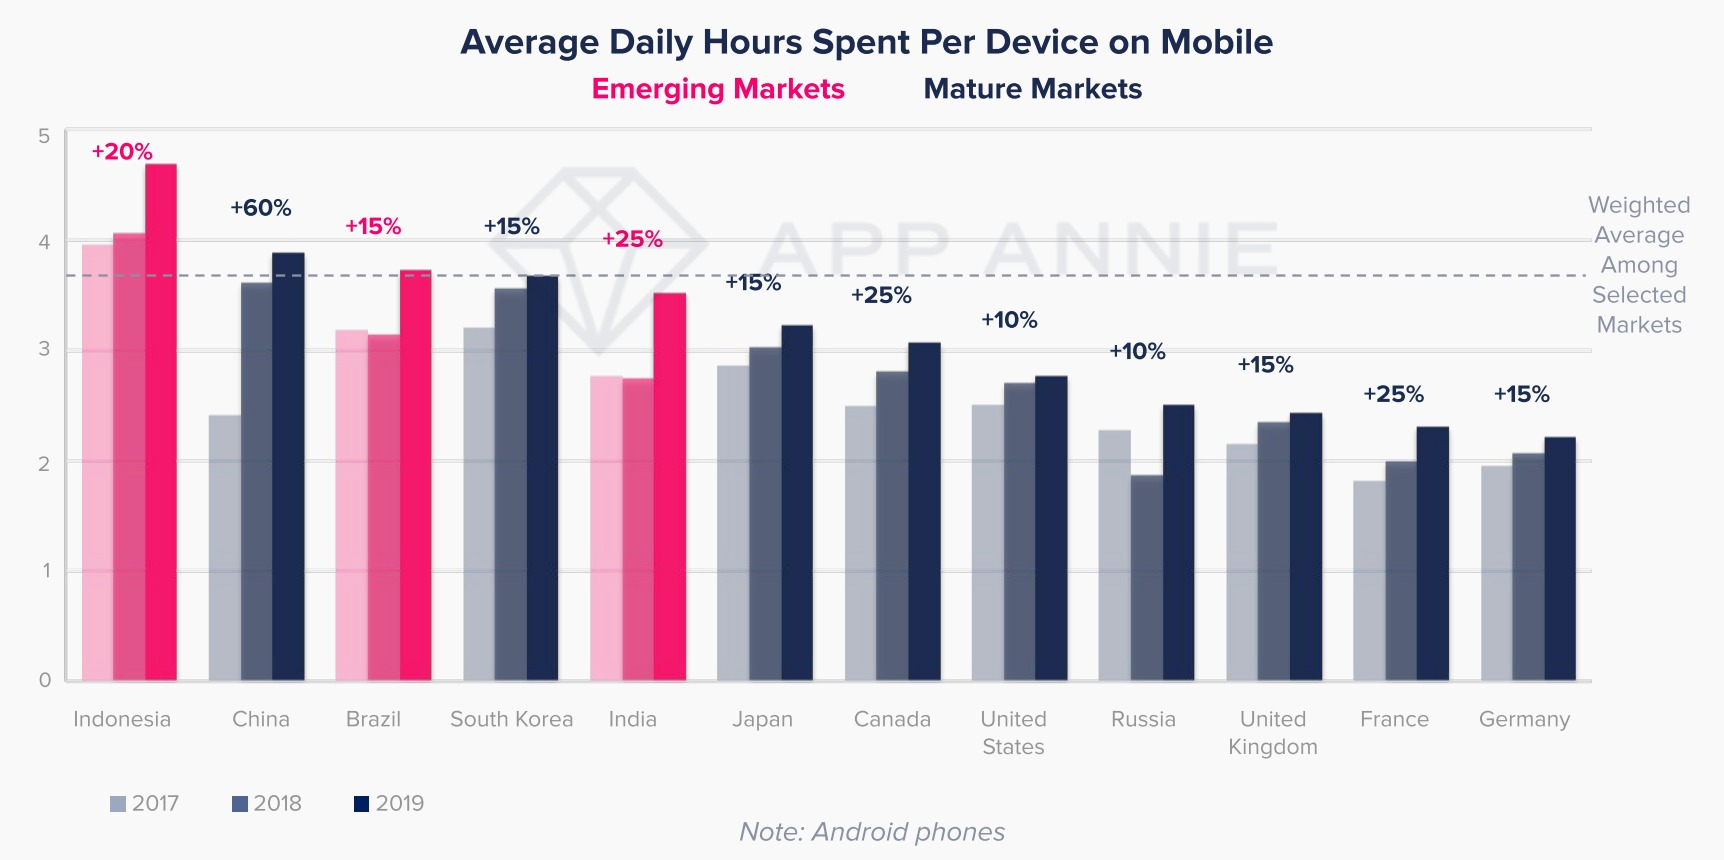 Average Daily Hours Spent Per Device